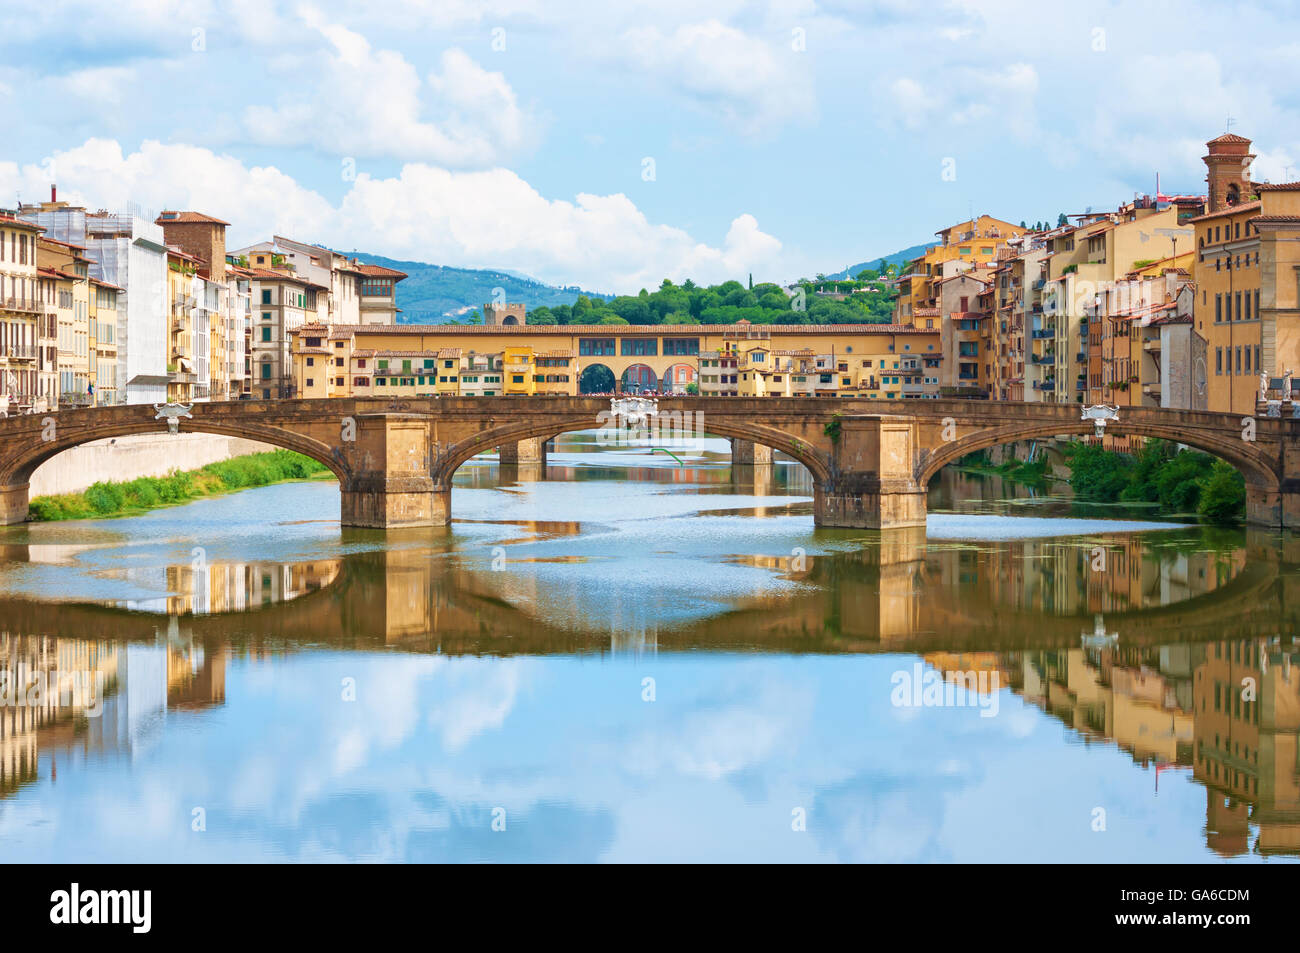 River Arno and Ponte Vecchio in Florence, Italy. - Stock Image